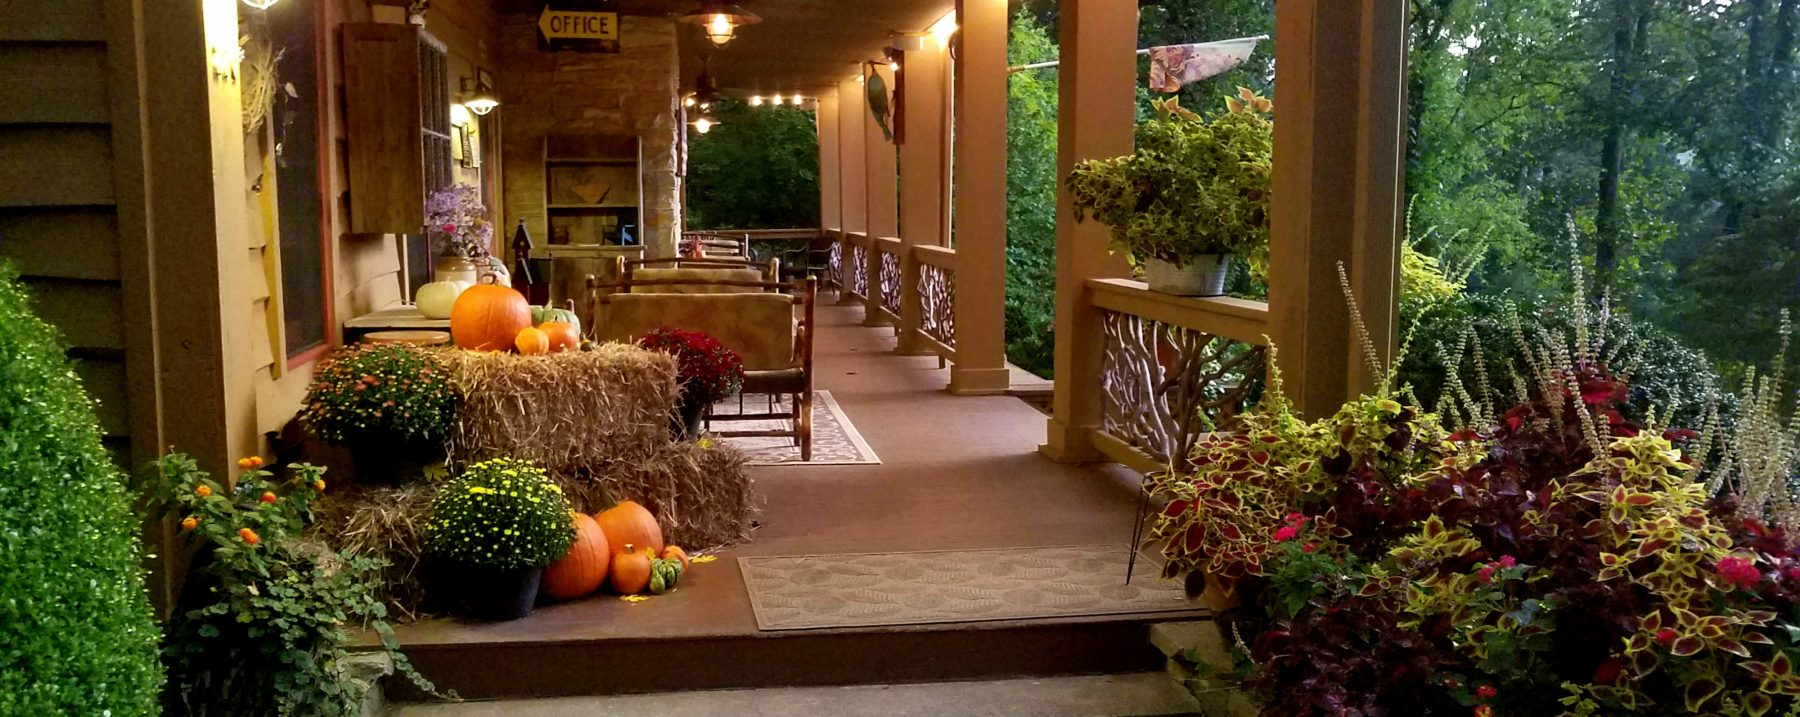 Photo of an Autumn Evening on our Front Porch